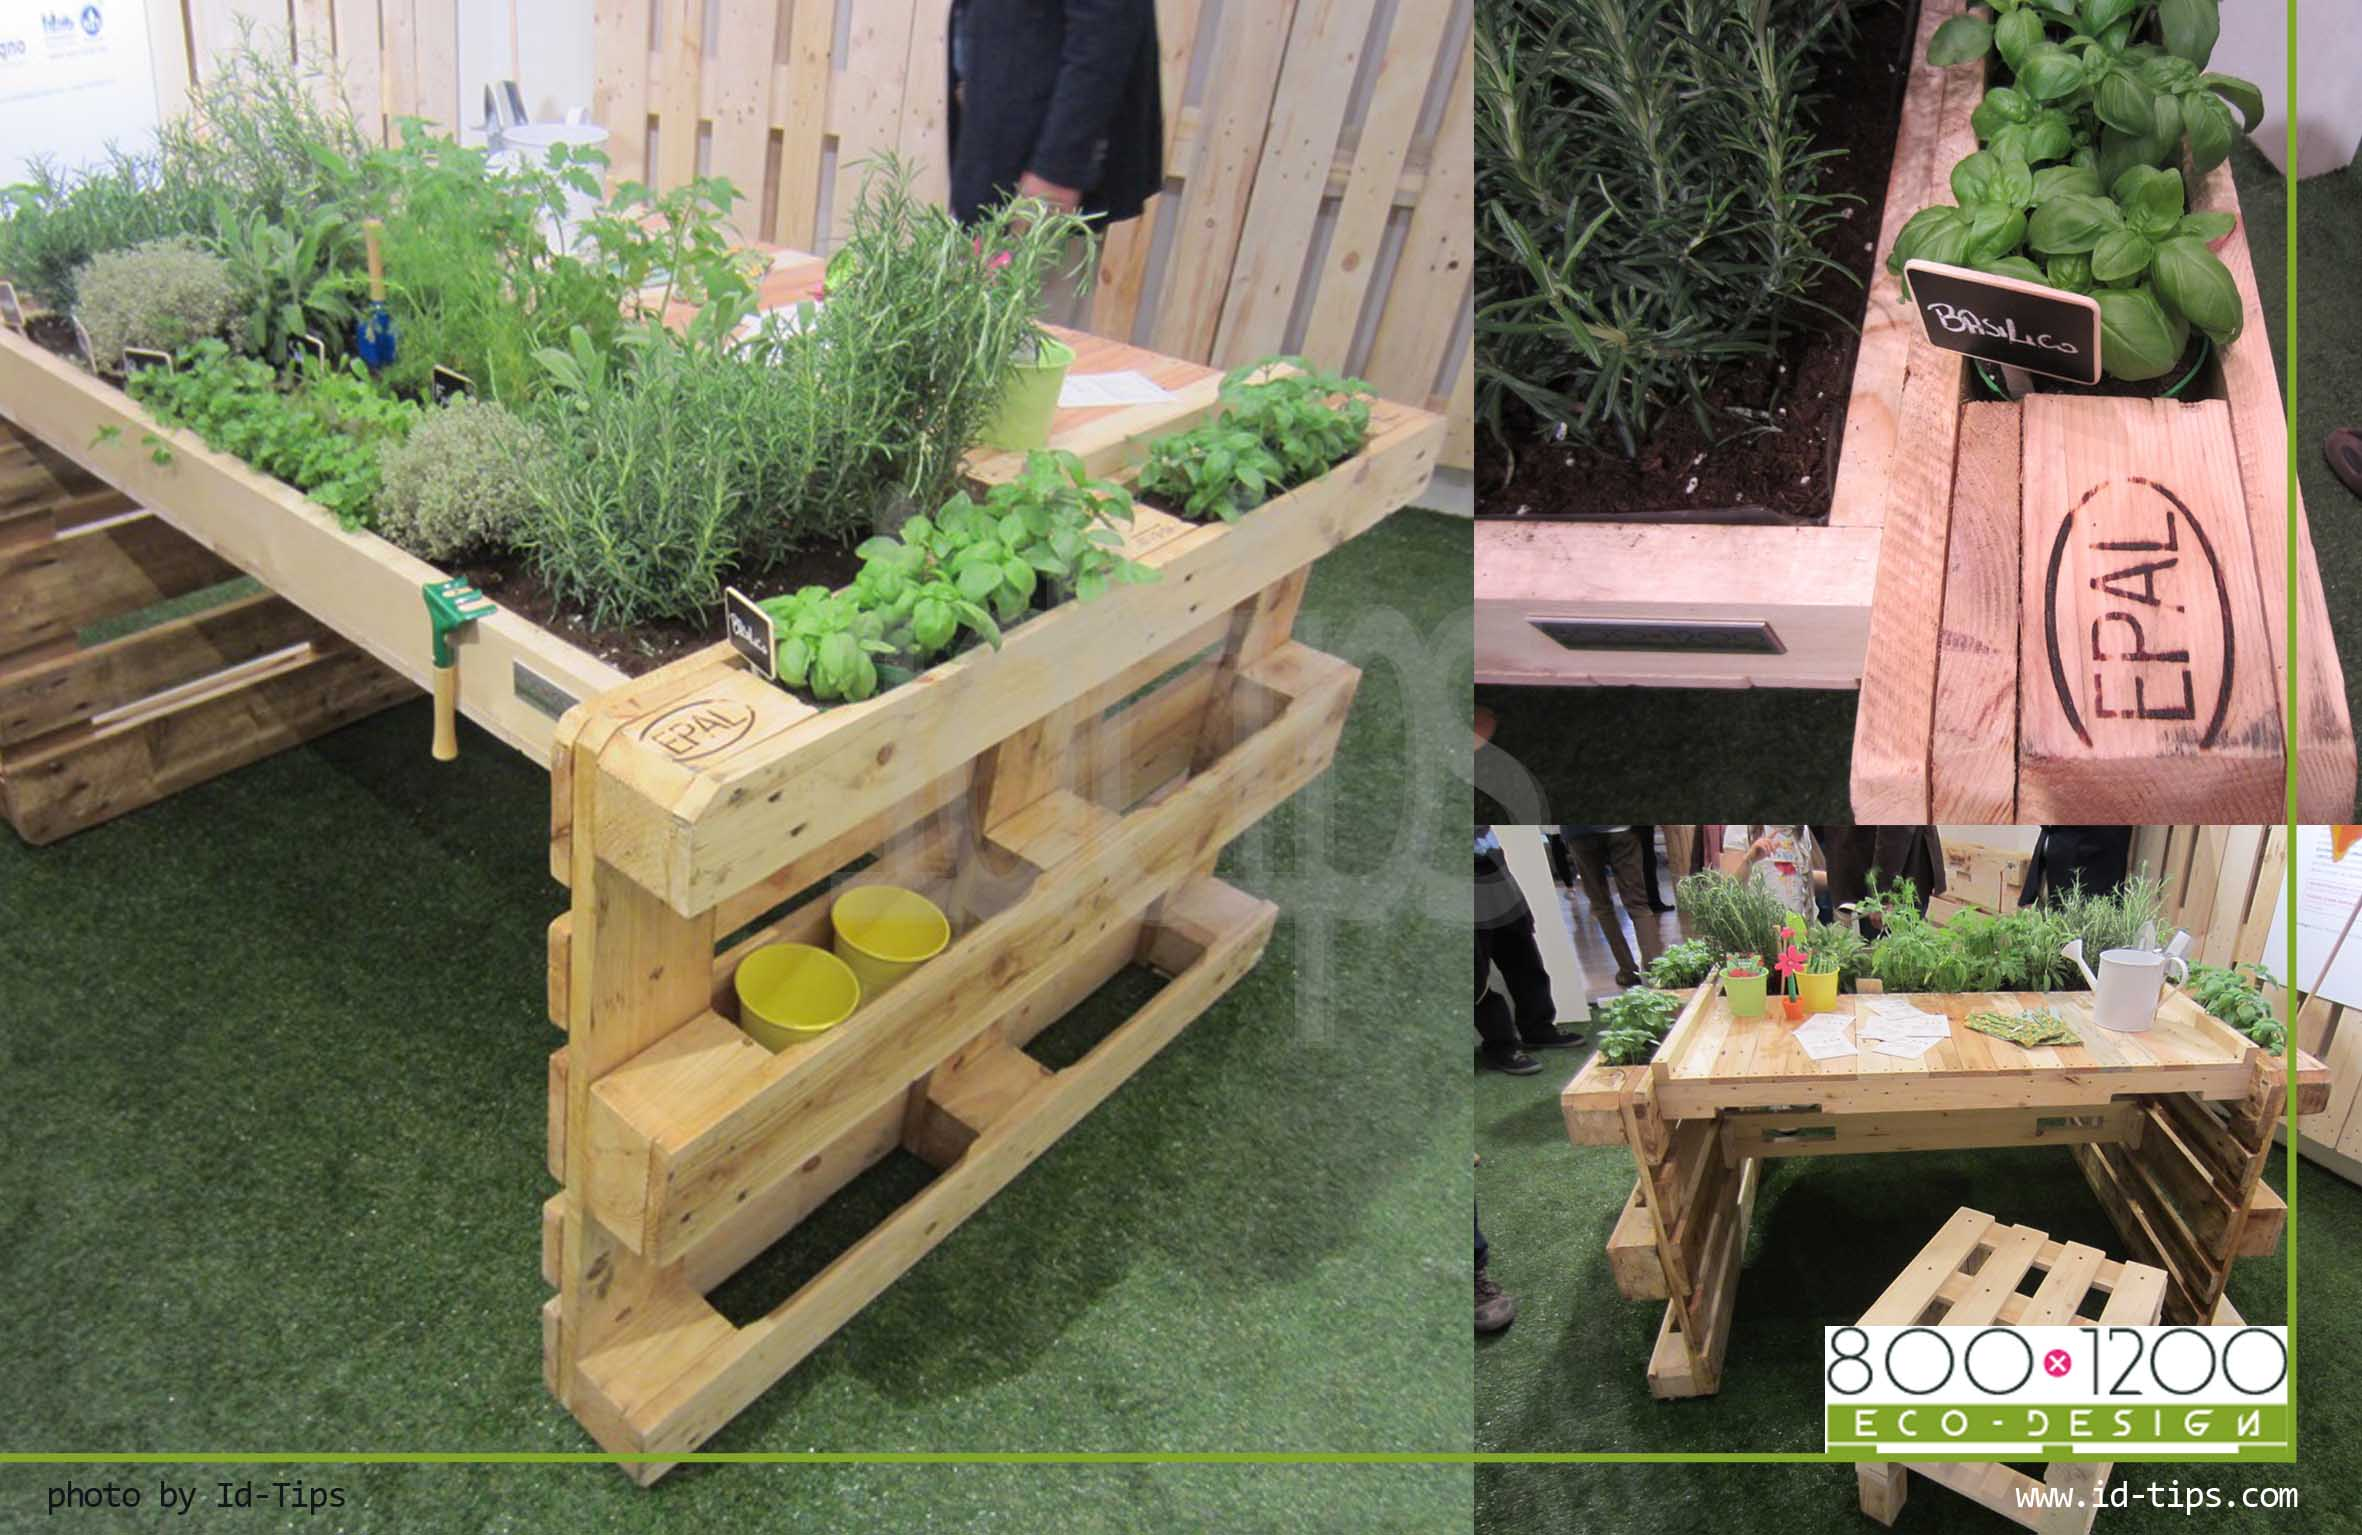 Il pallet ovunque id tips interior design tips blog for Mobile giardino